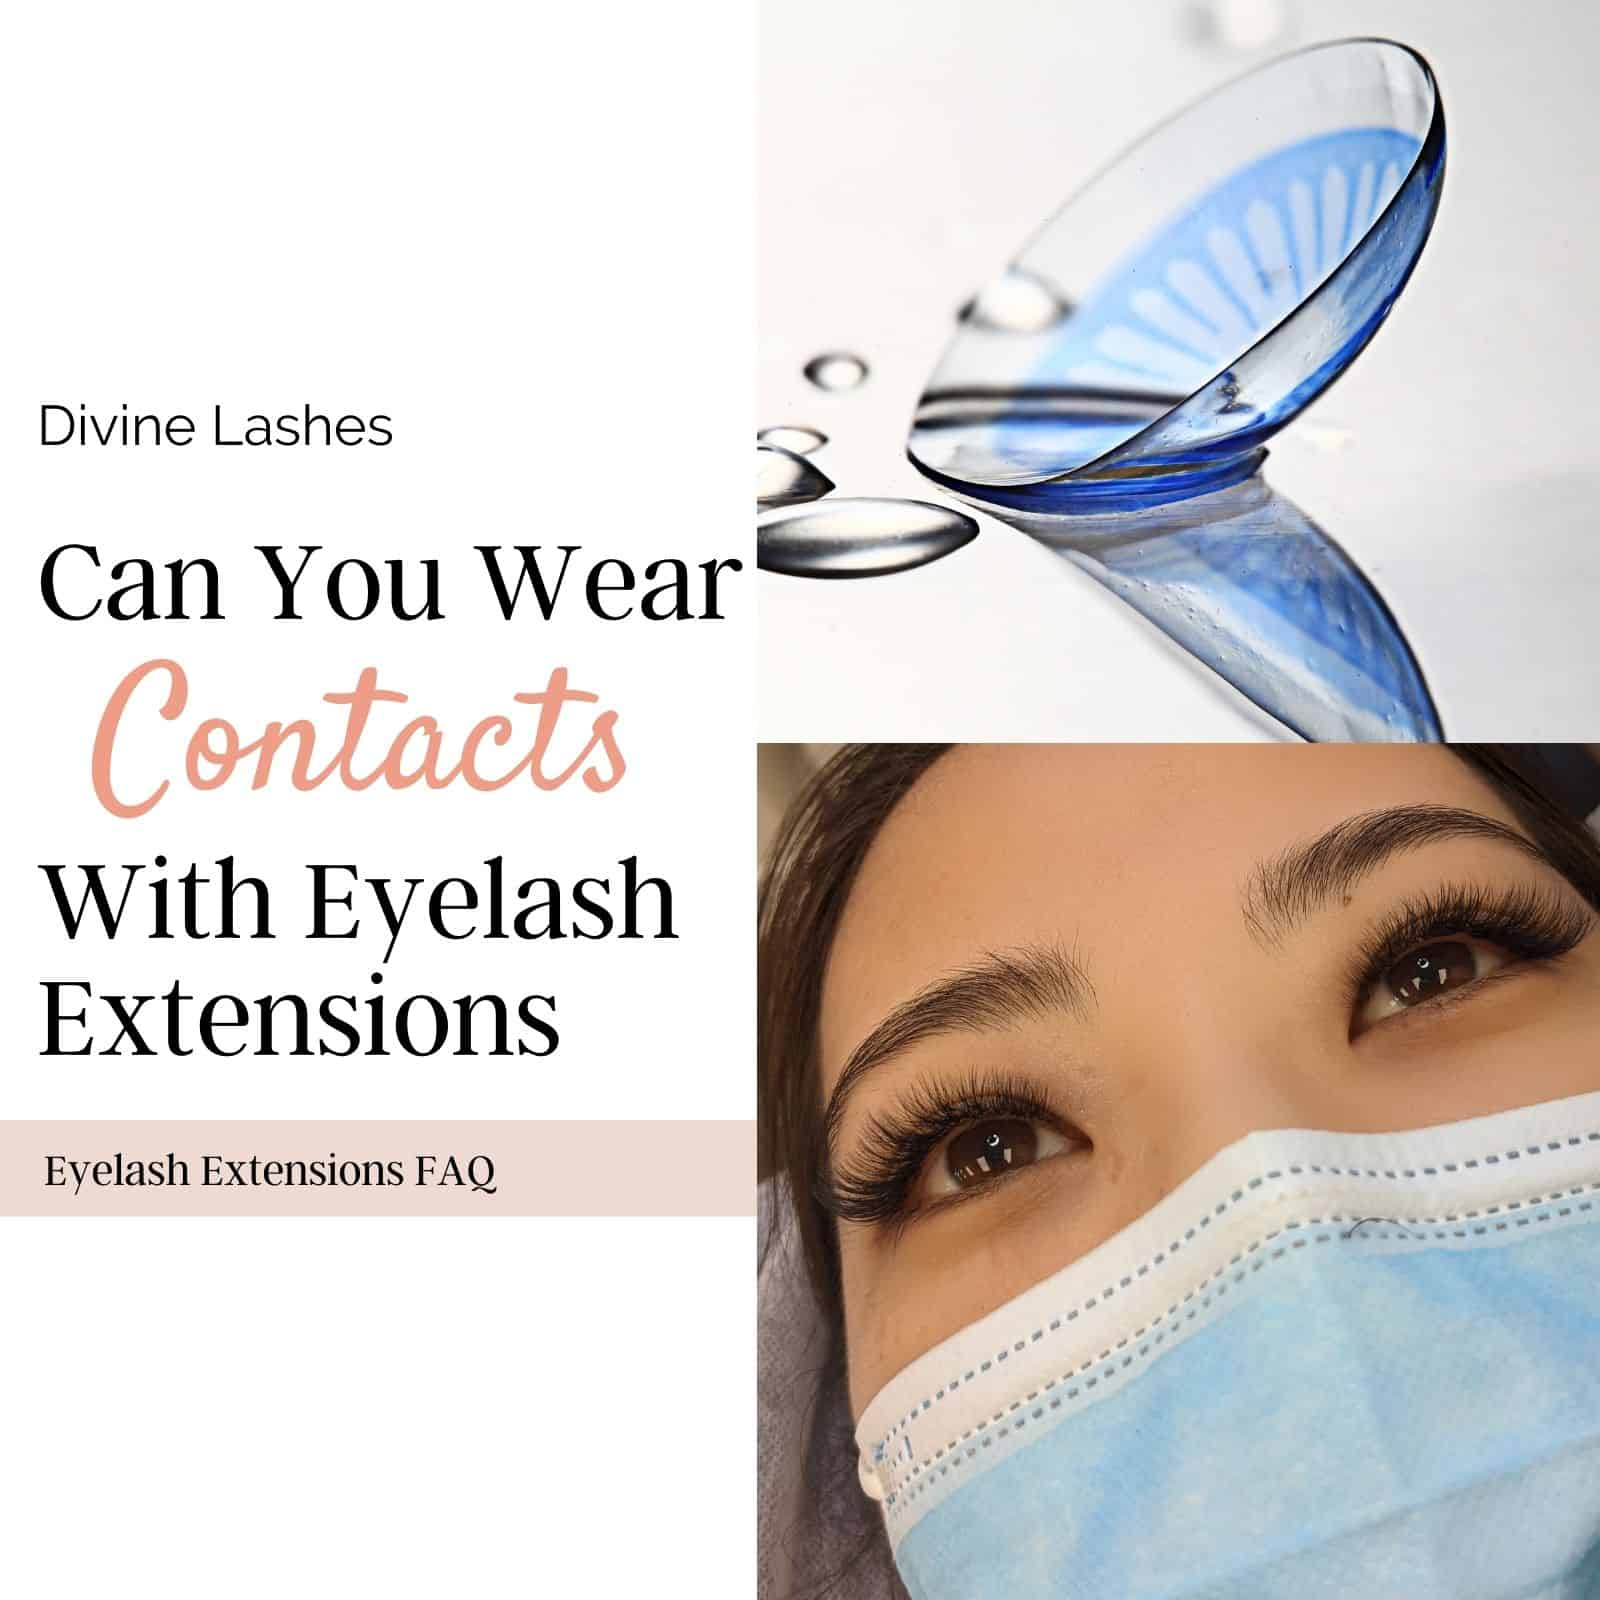 Can you wear contacts with eyelash extensions